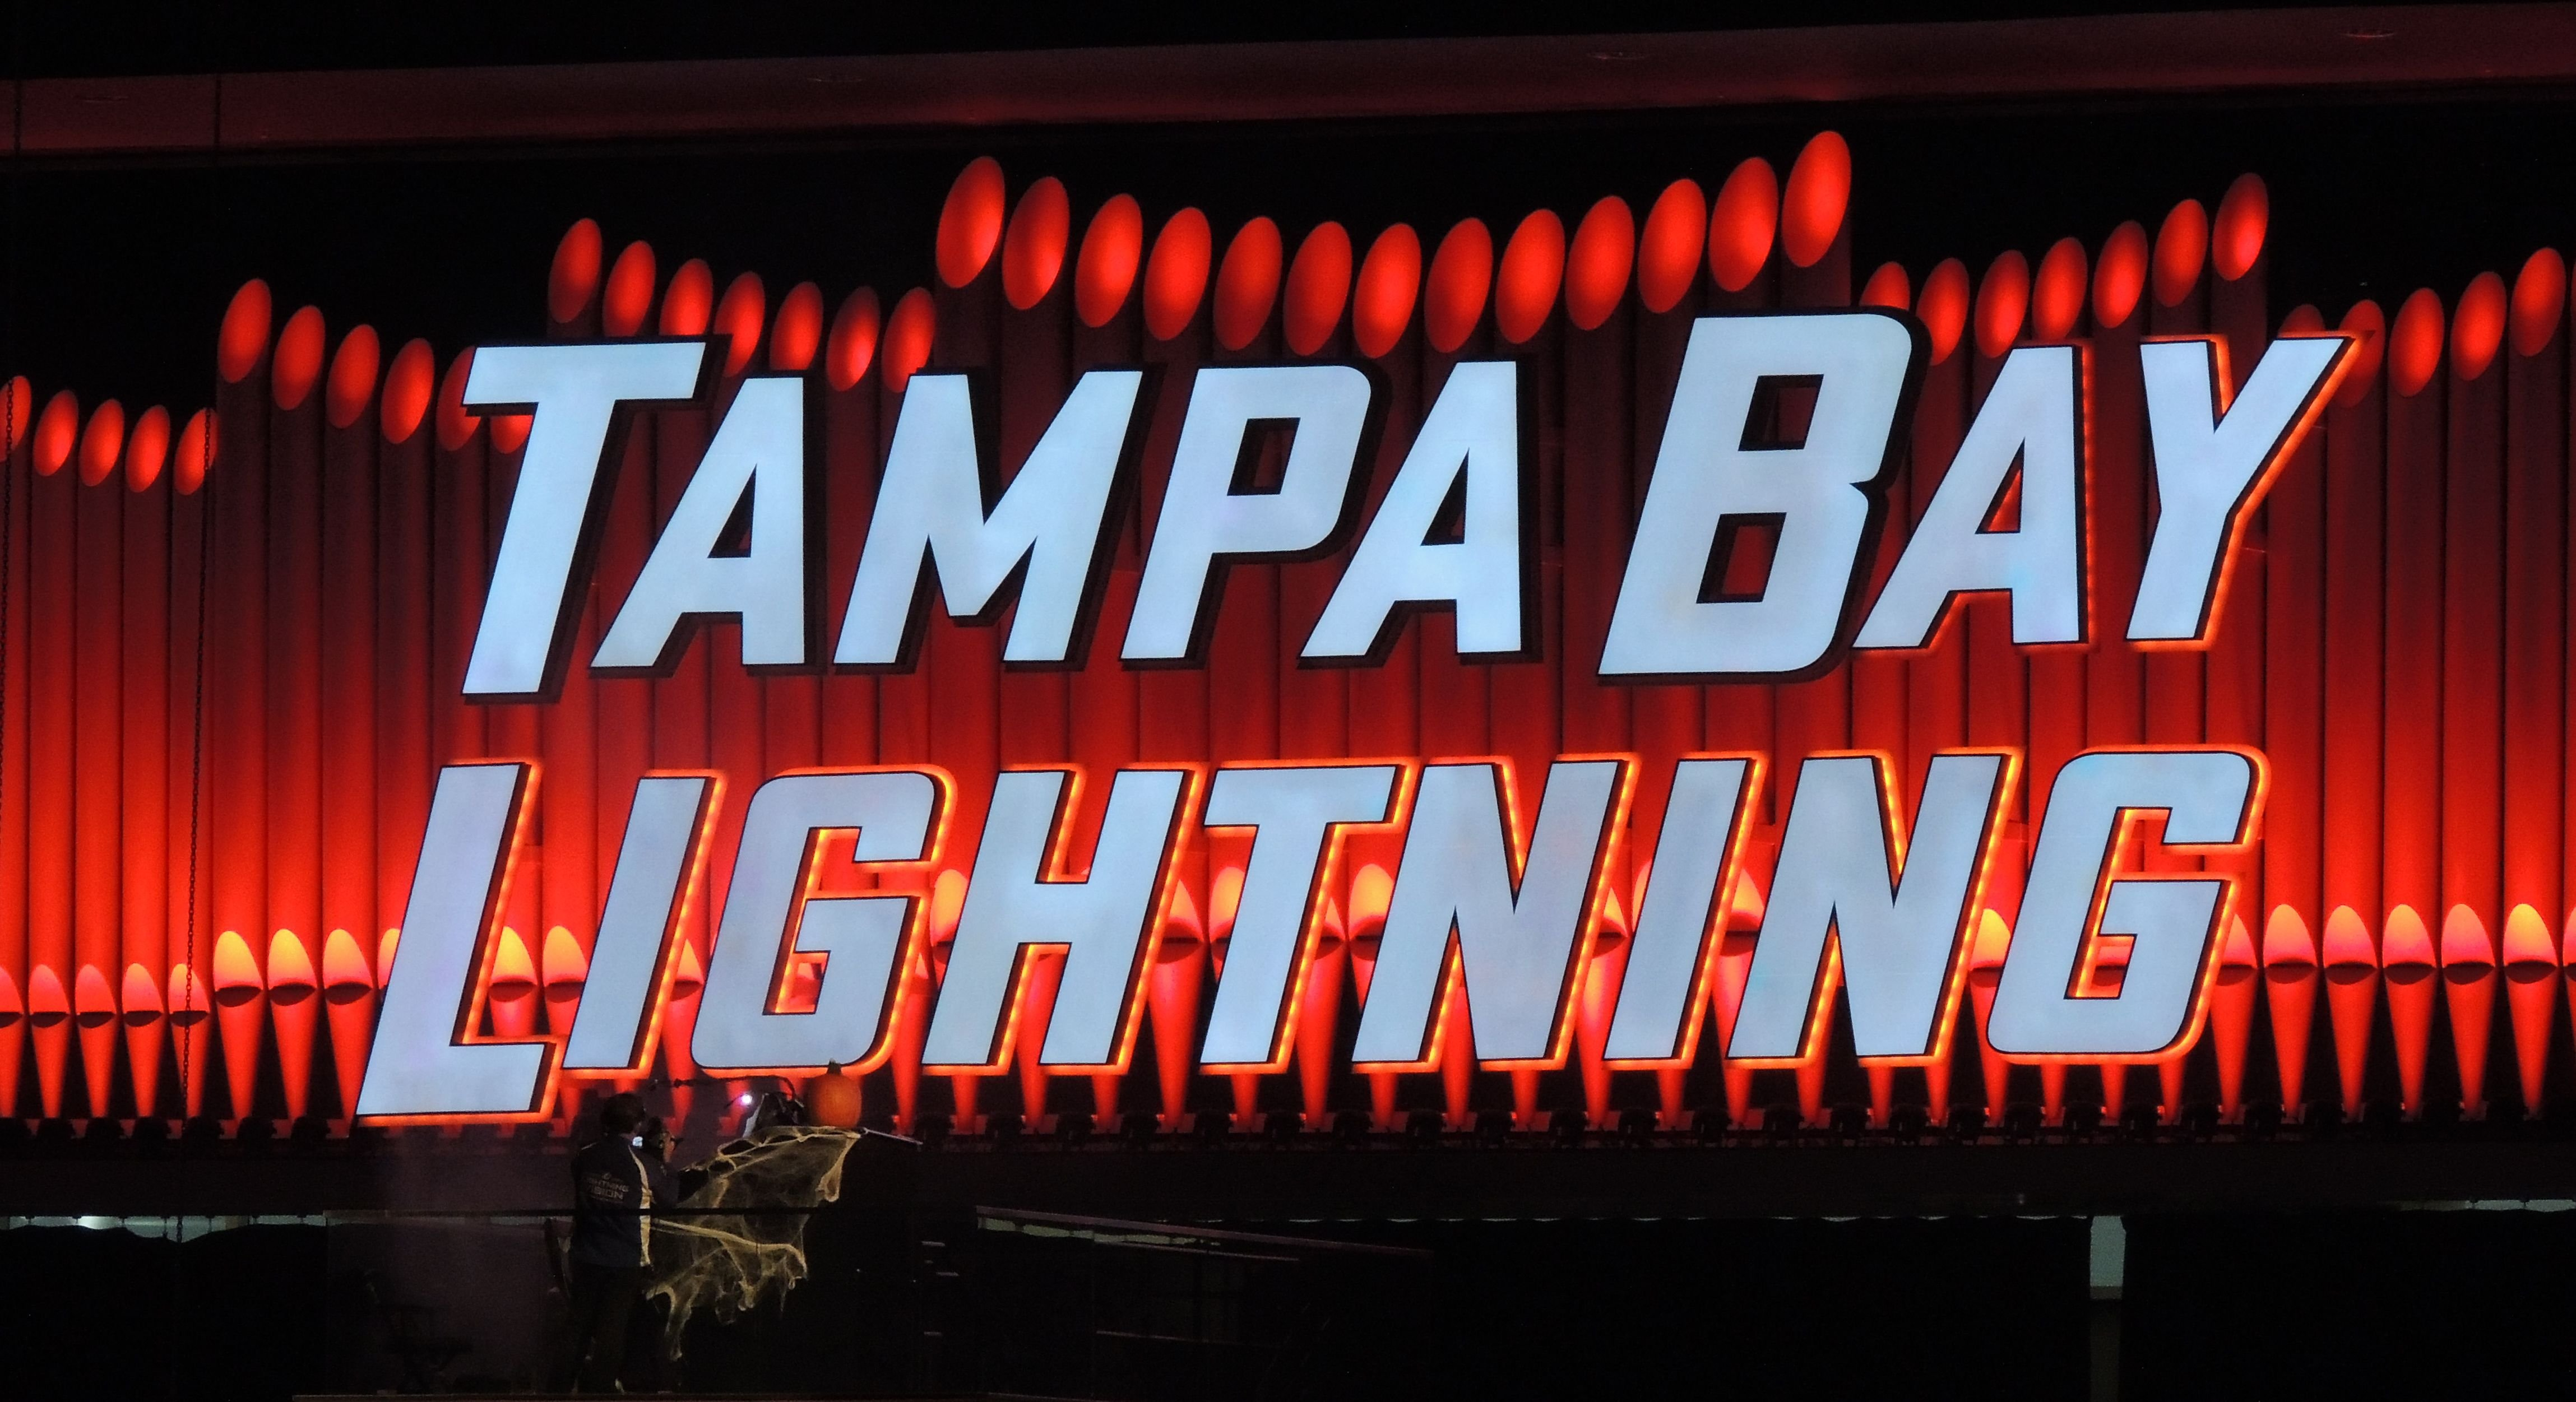 TAMPA BAY LIGHTNING nhl hockey 34 wallpaper 4596x2502 349215 4596x2502